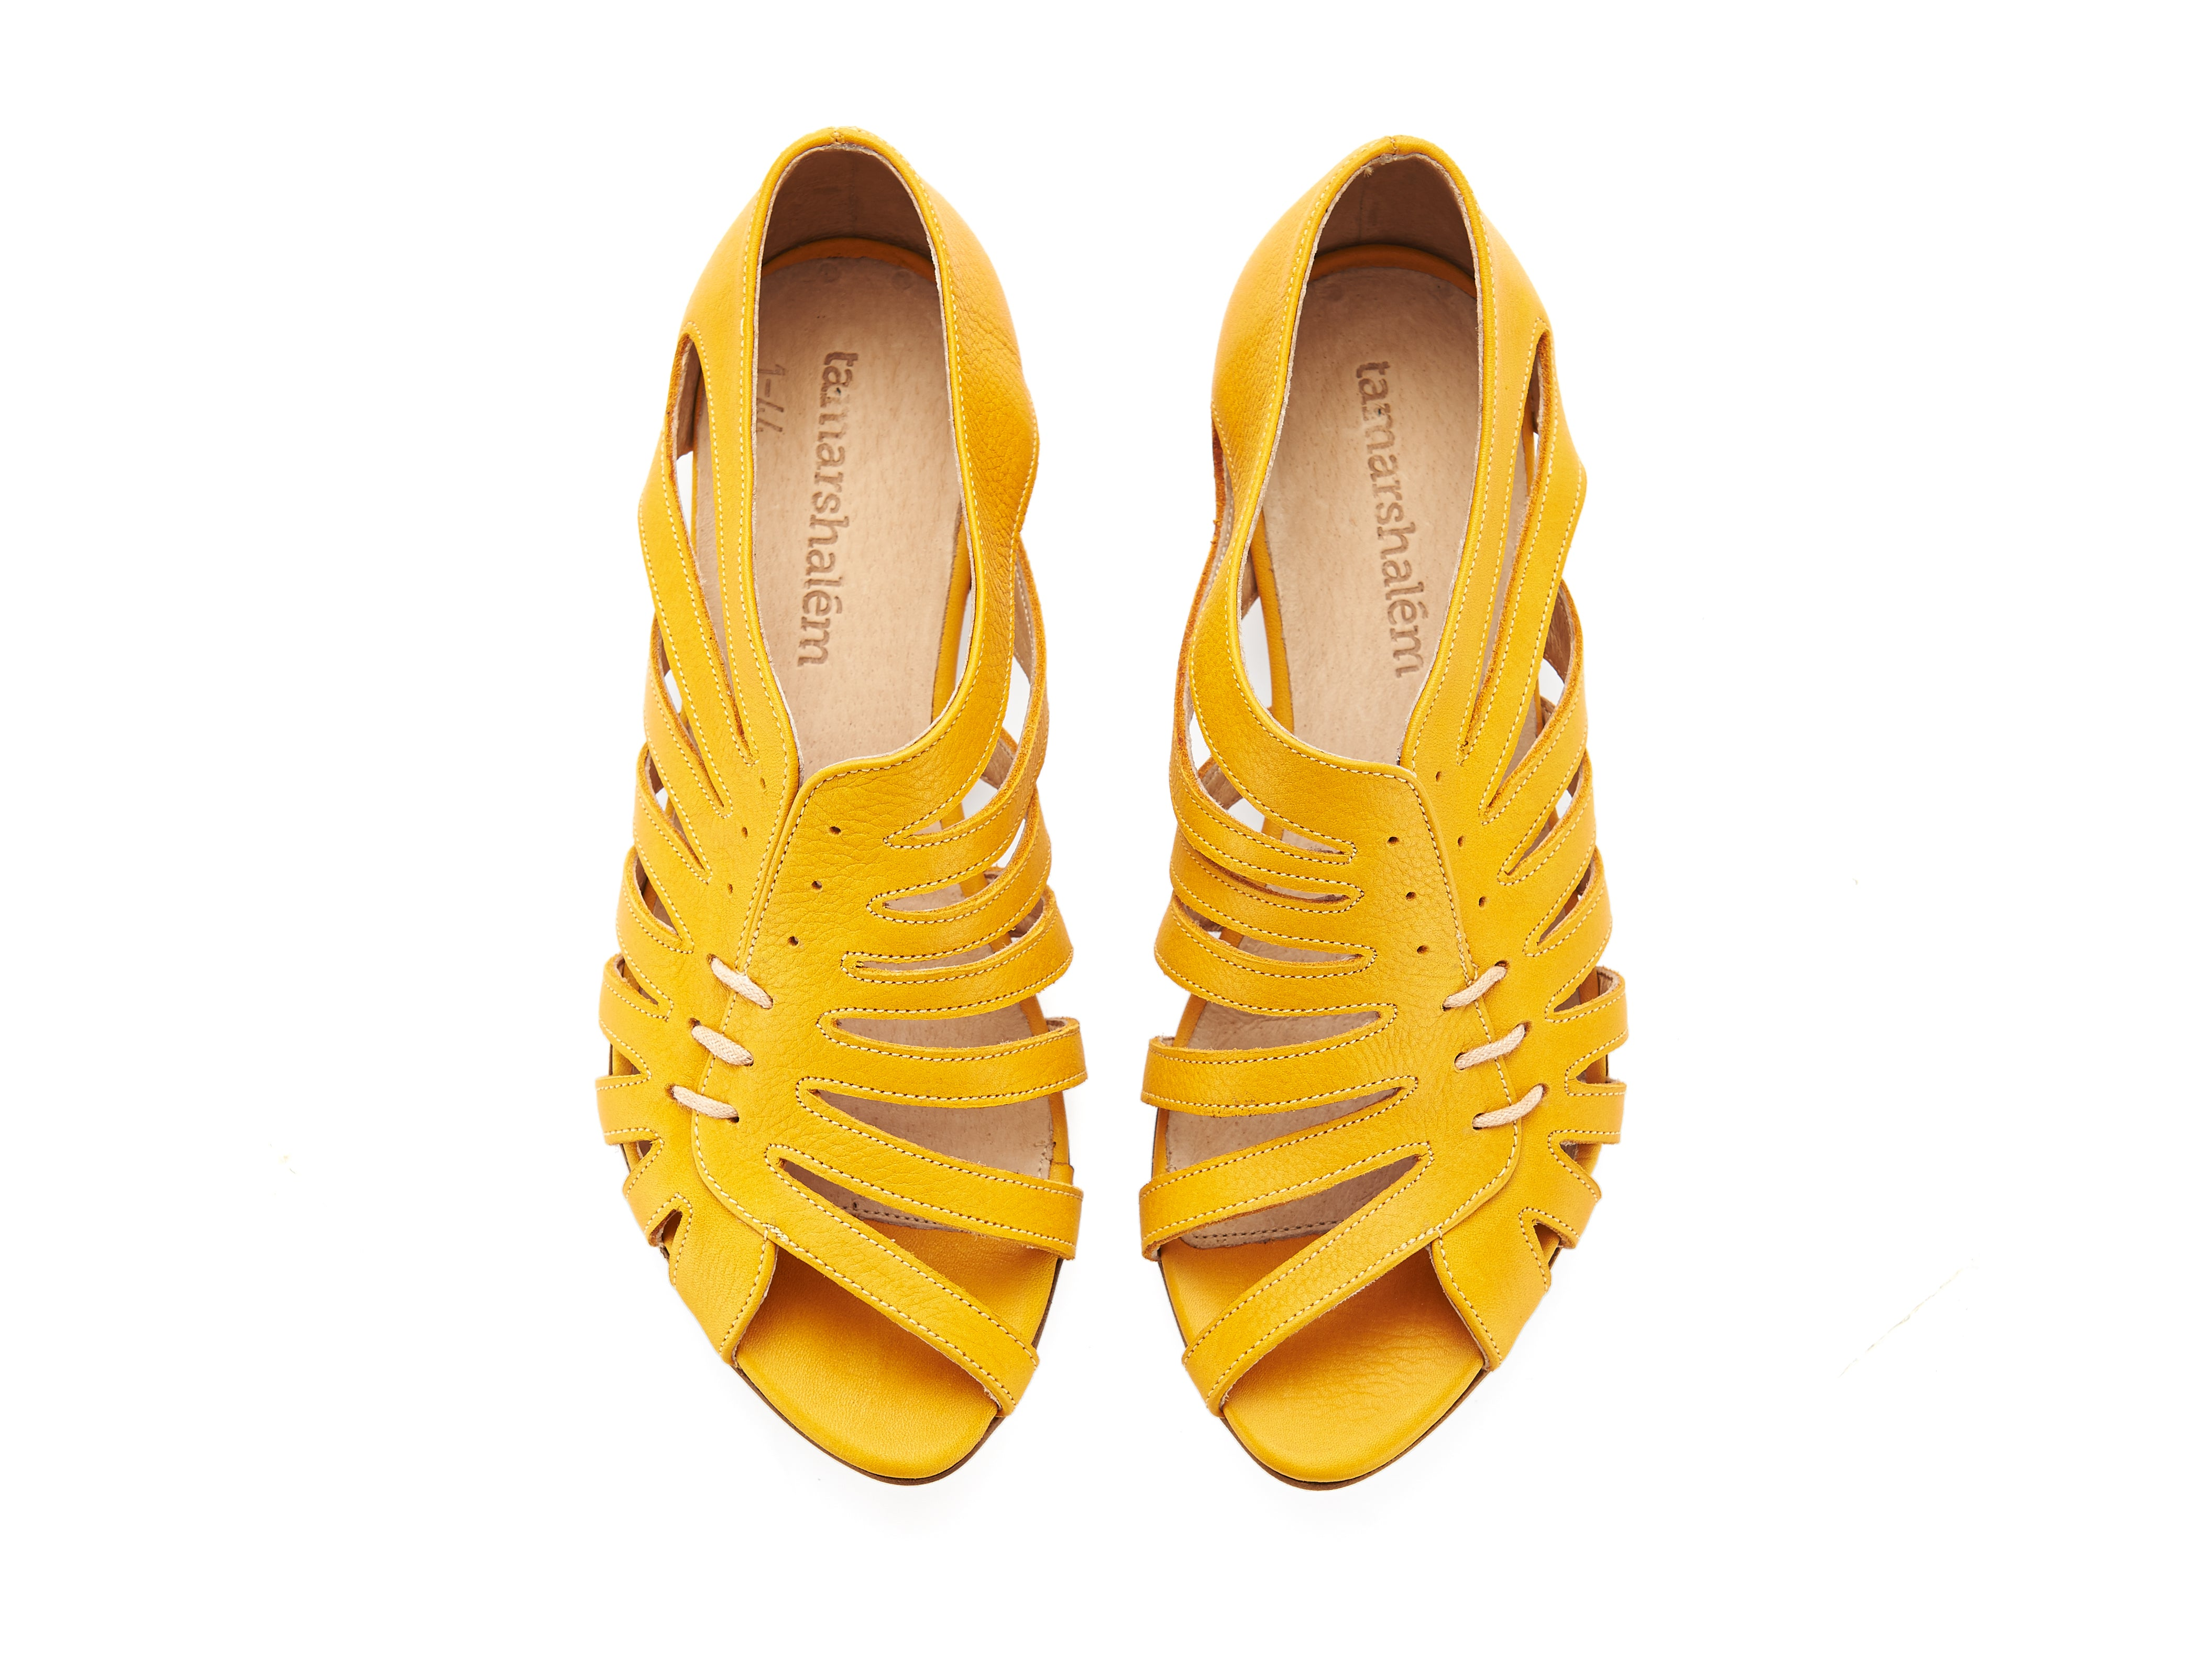 Gilly sandals, yellow